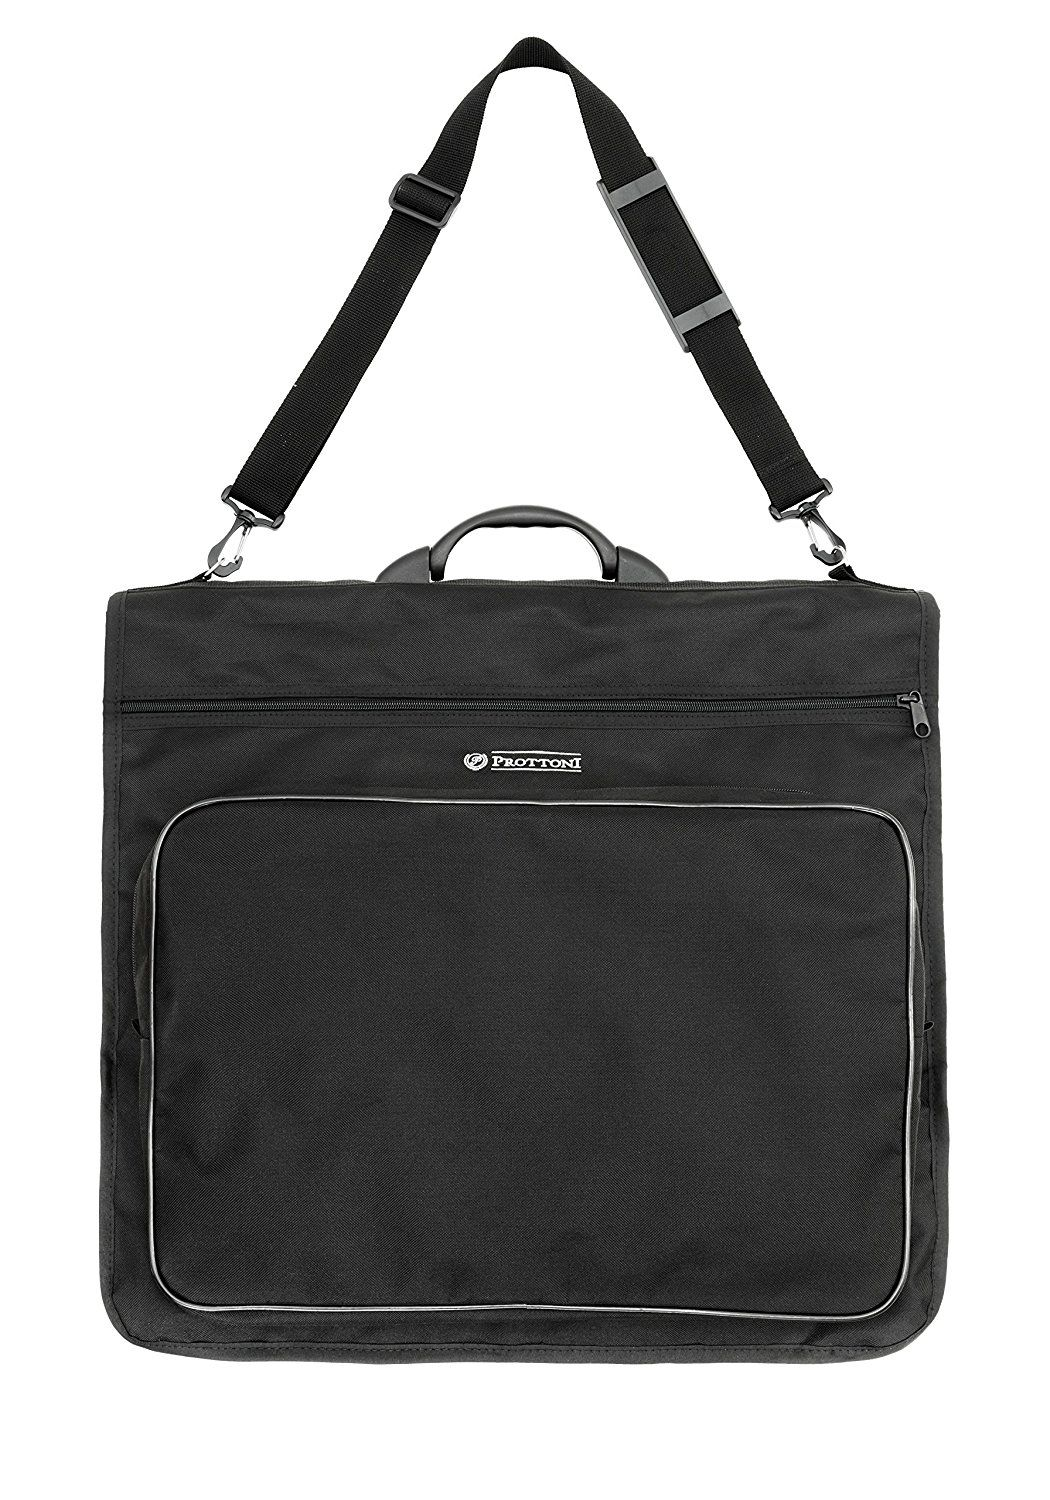 Pin by Travel Bags on Luggage Suit bag, Garment bags, Bags